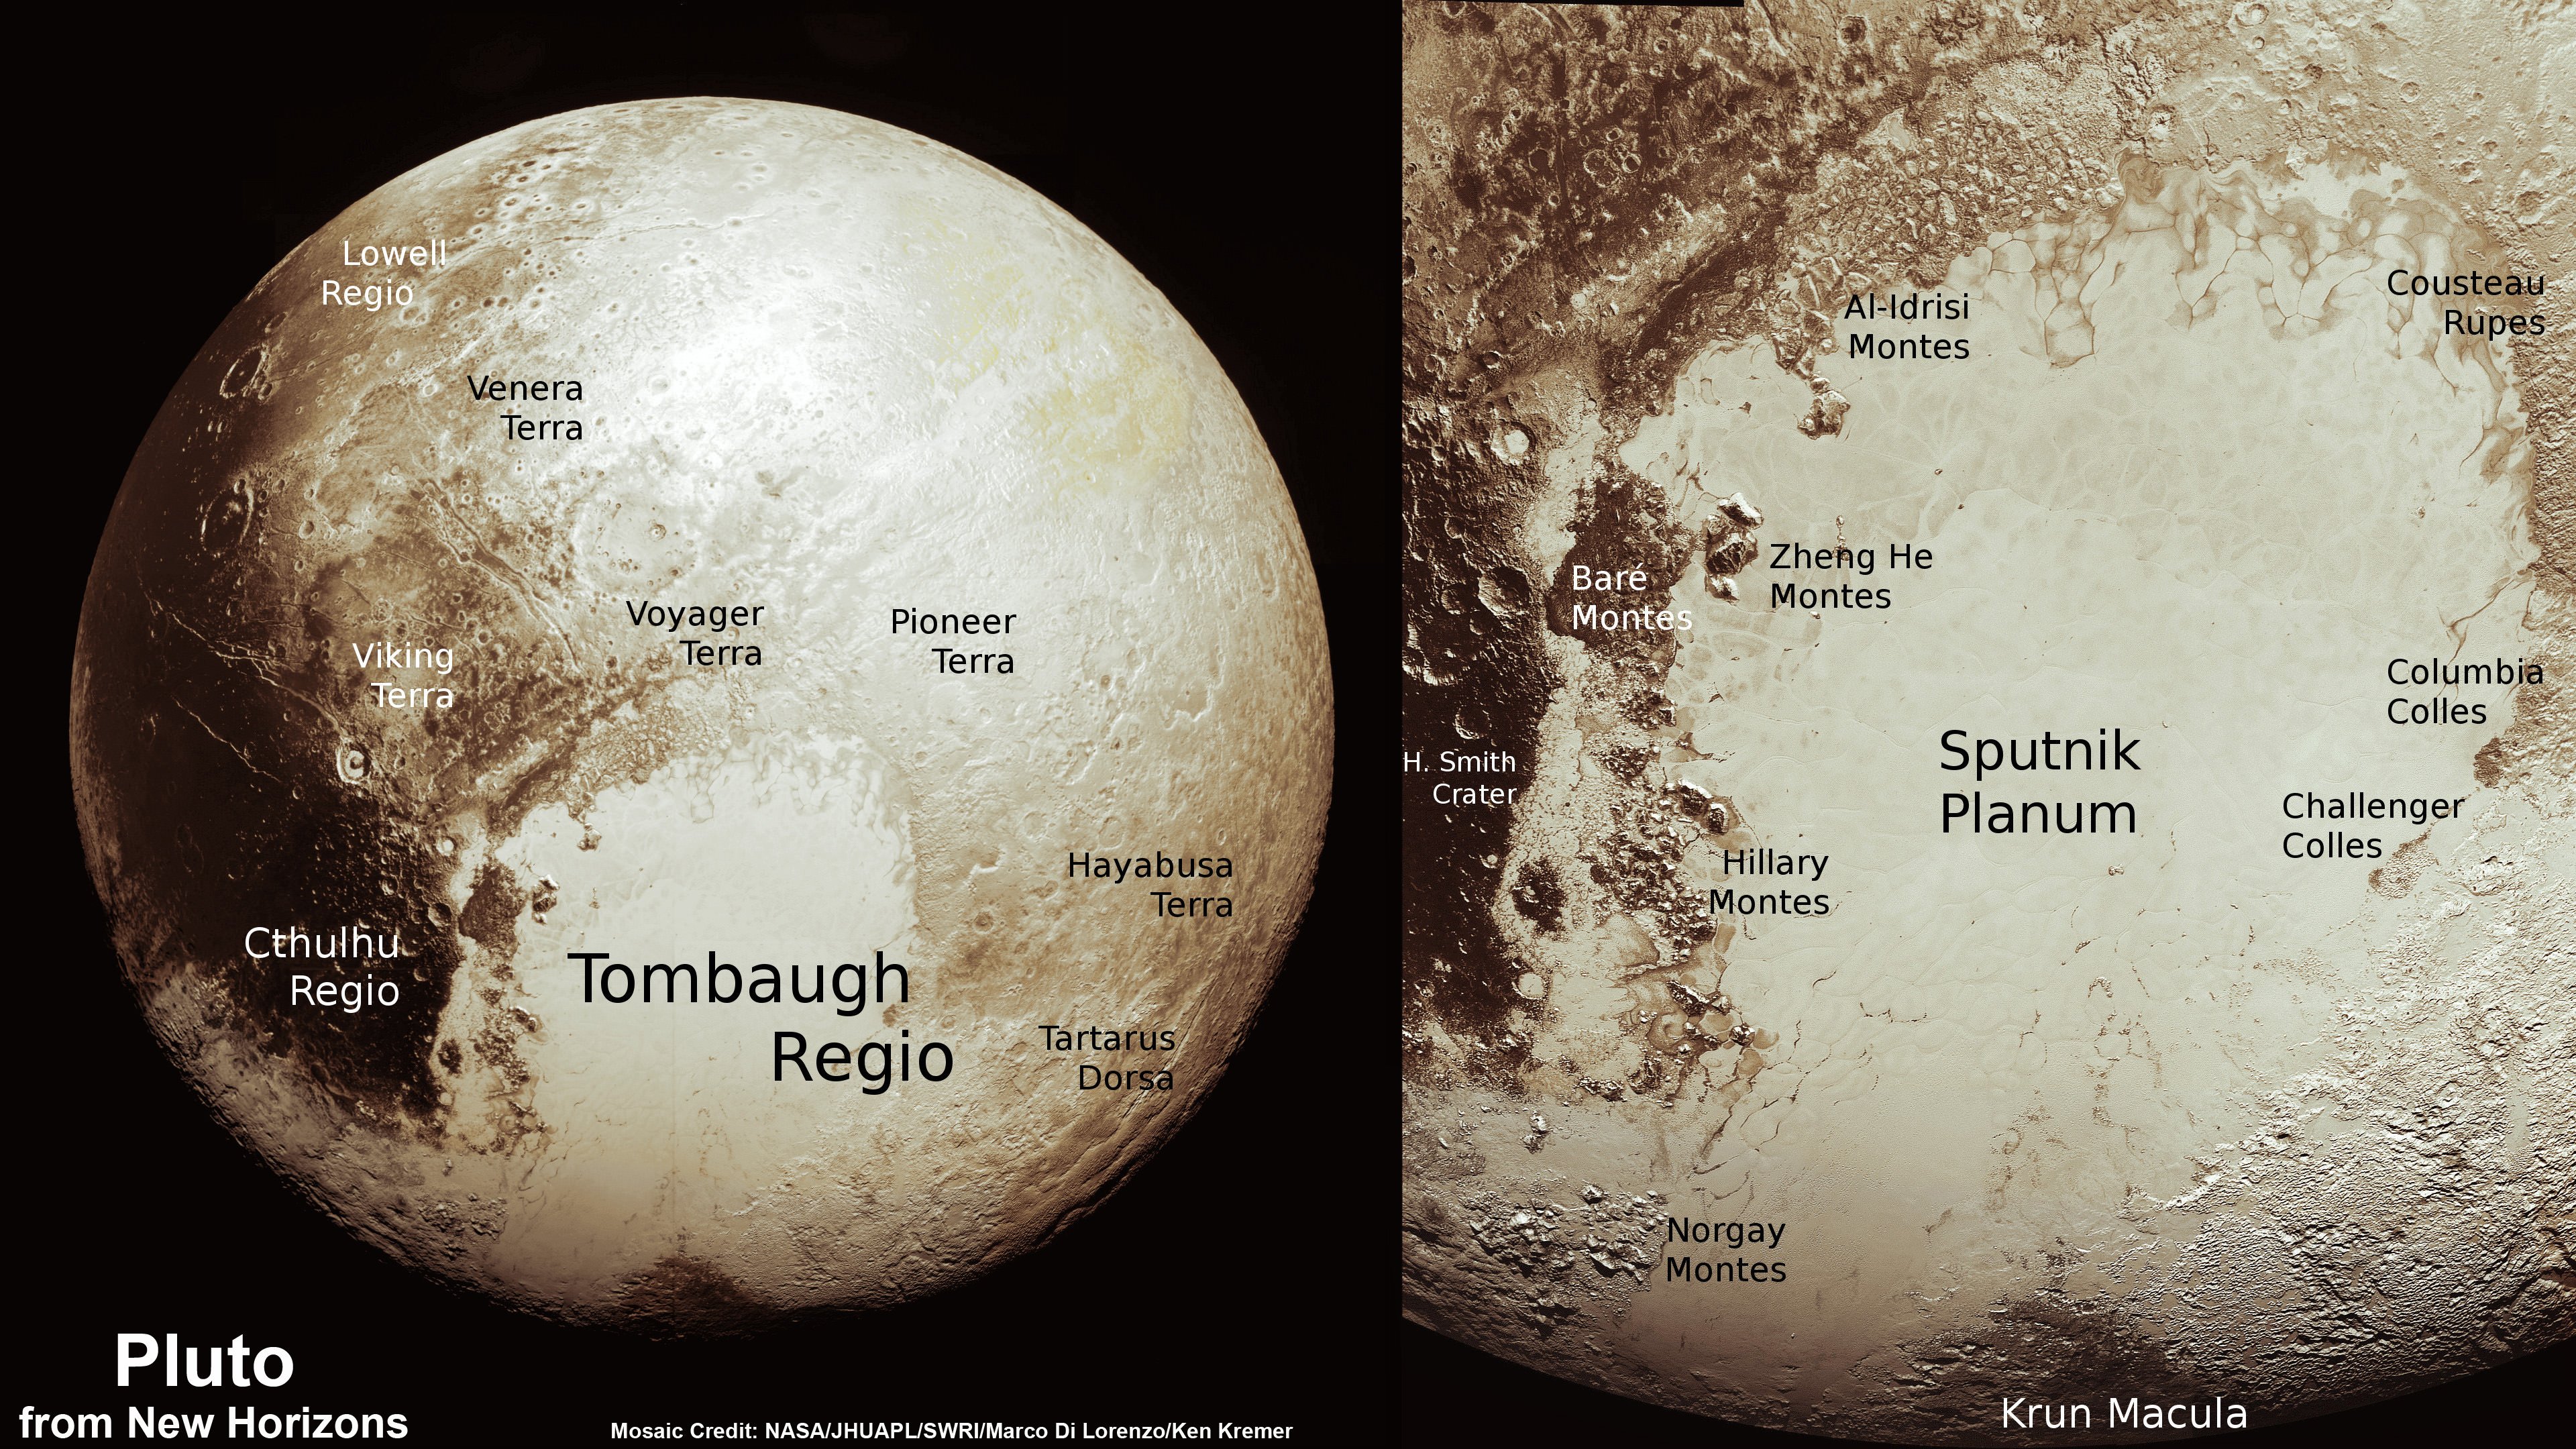 Discovery Of Pluto: Possible Ice Volcanoes Discovered On Pluto